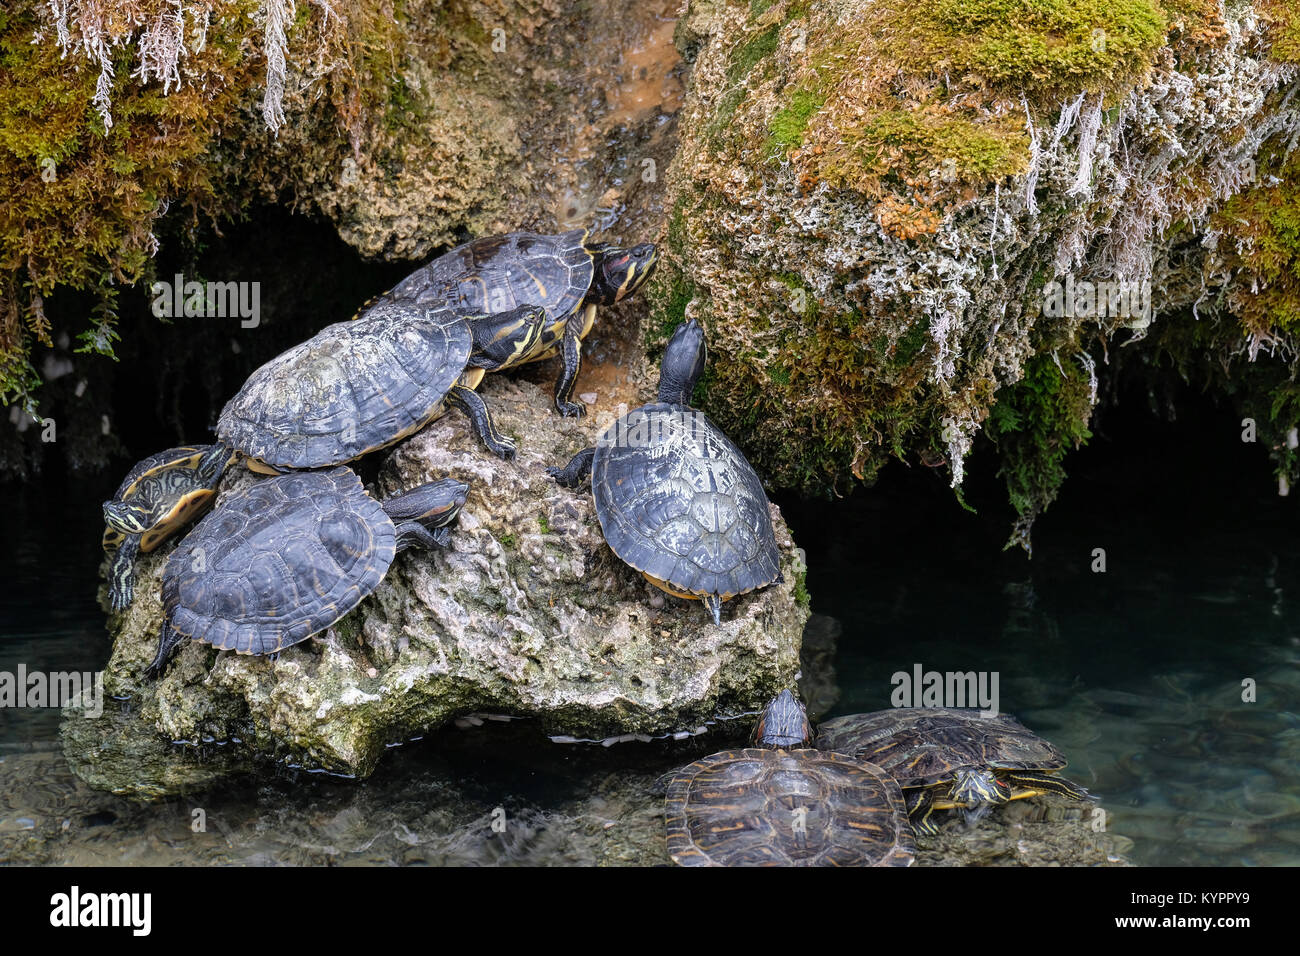 Dozens of small turtles, staying completely motionless on a cold december day. - Stock Image